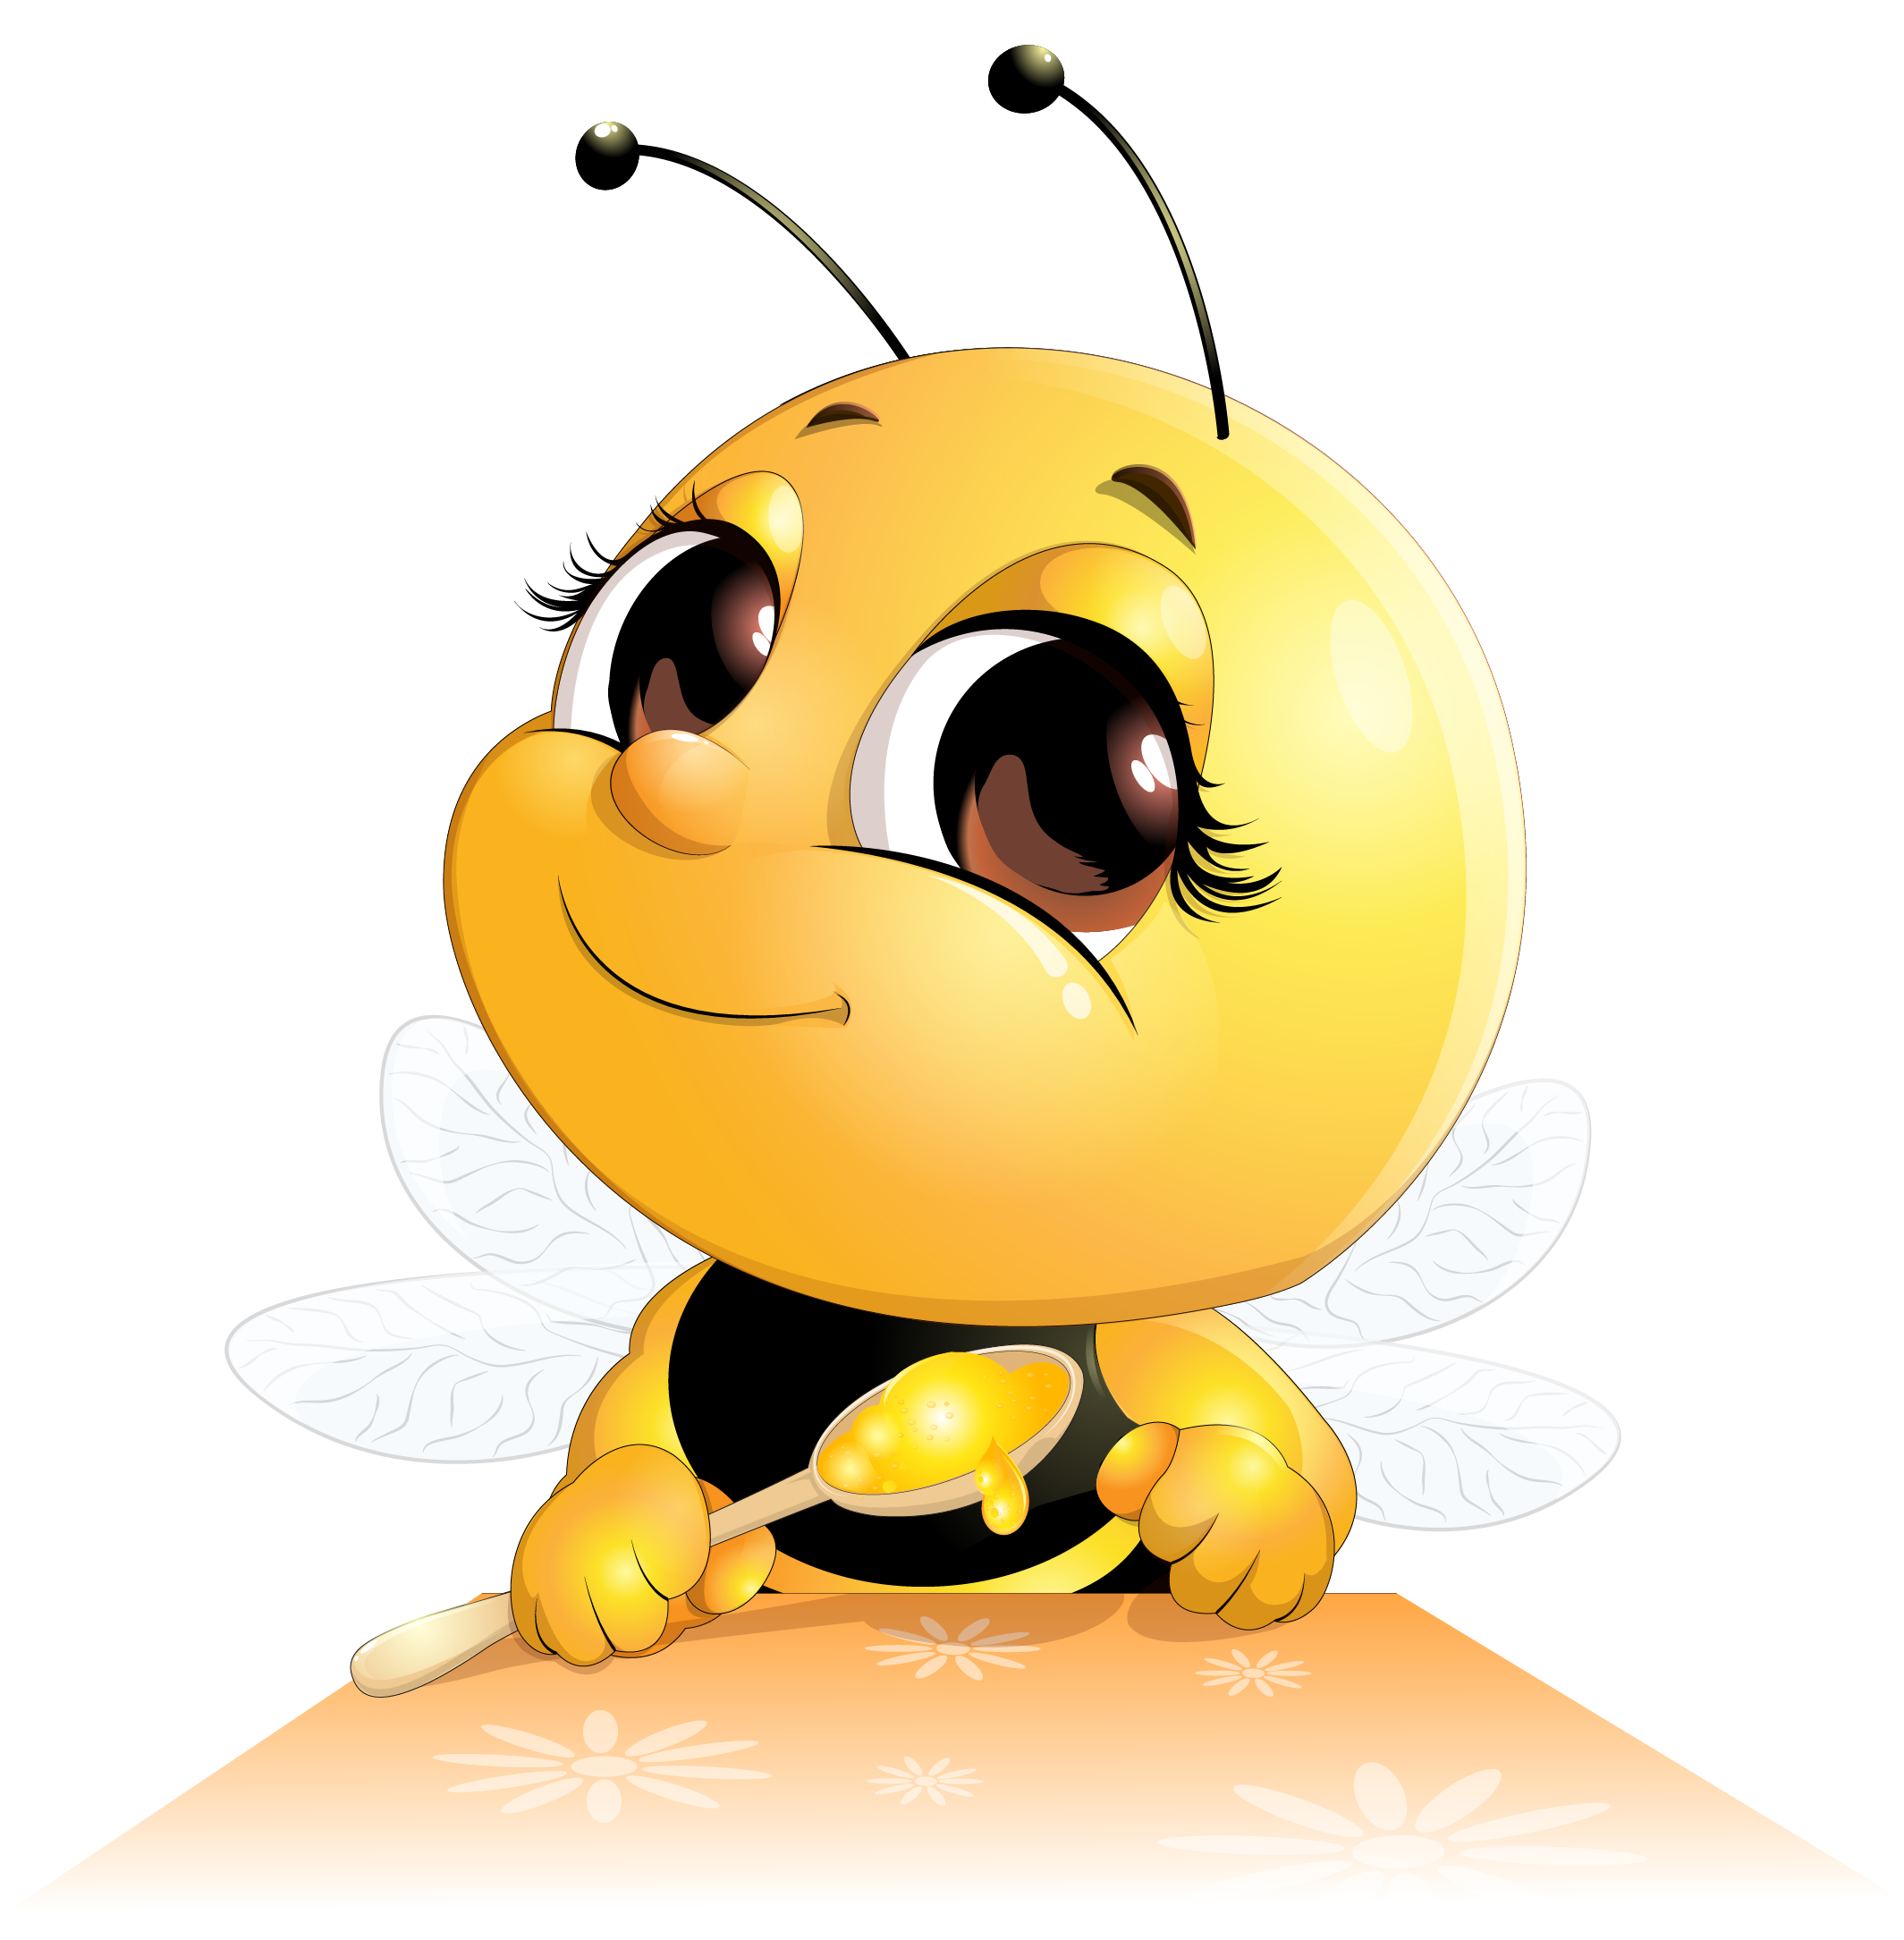 Animated butter png. Honey bee cartoon meal